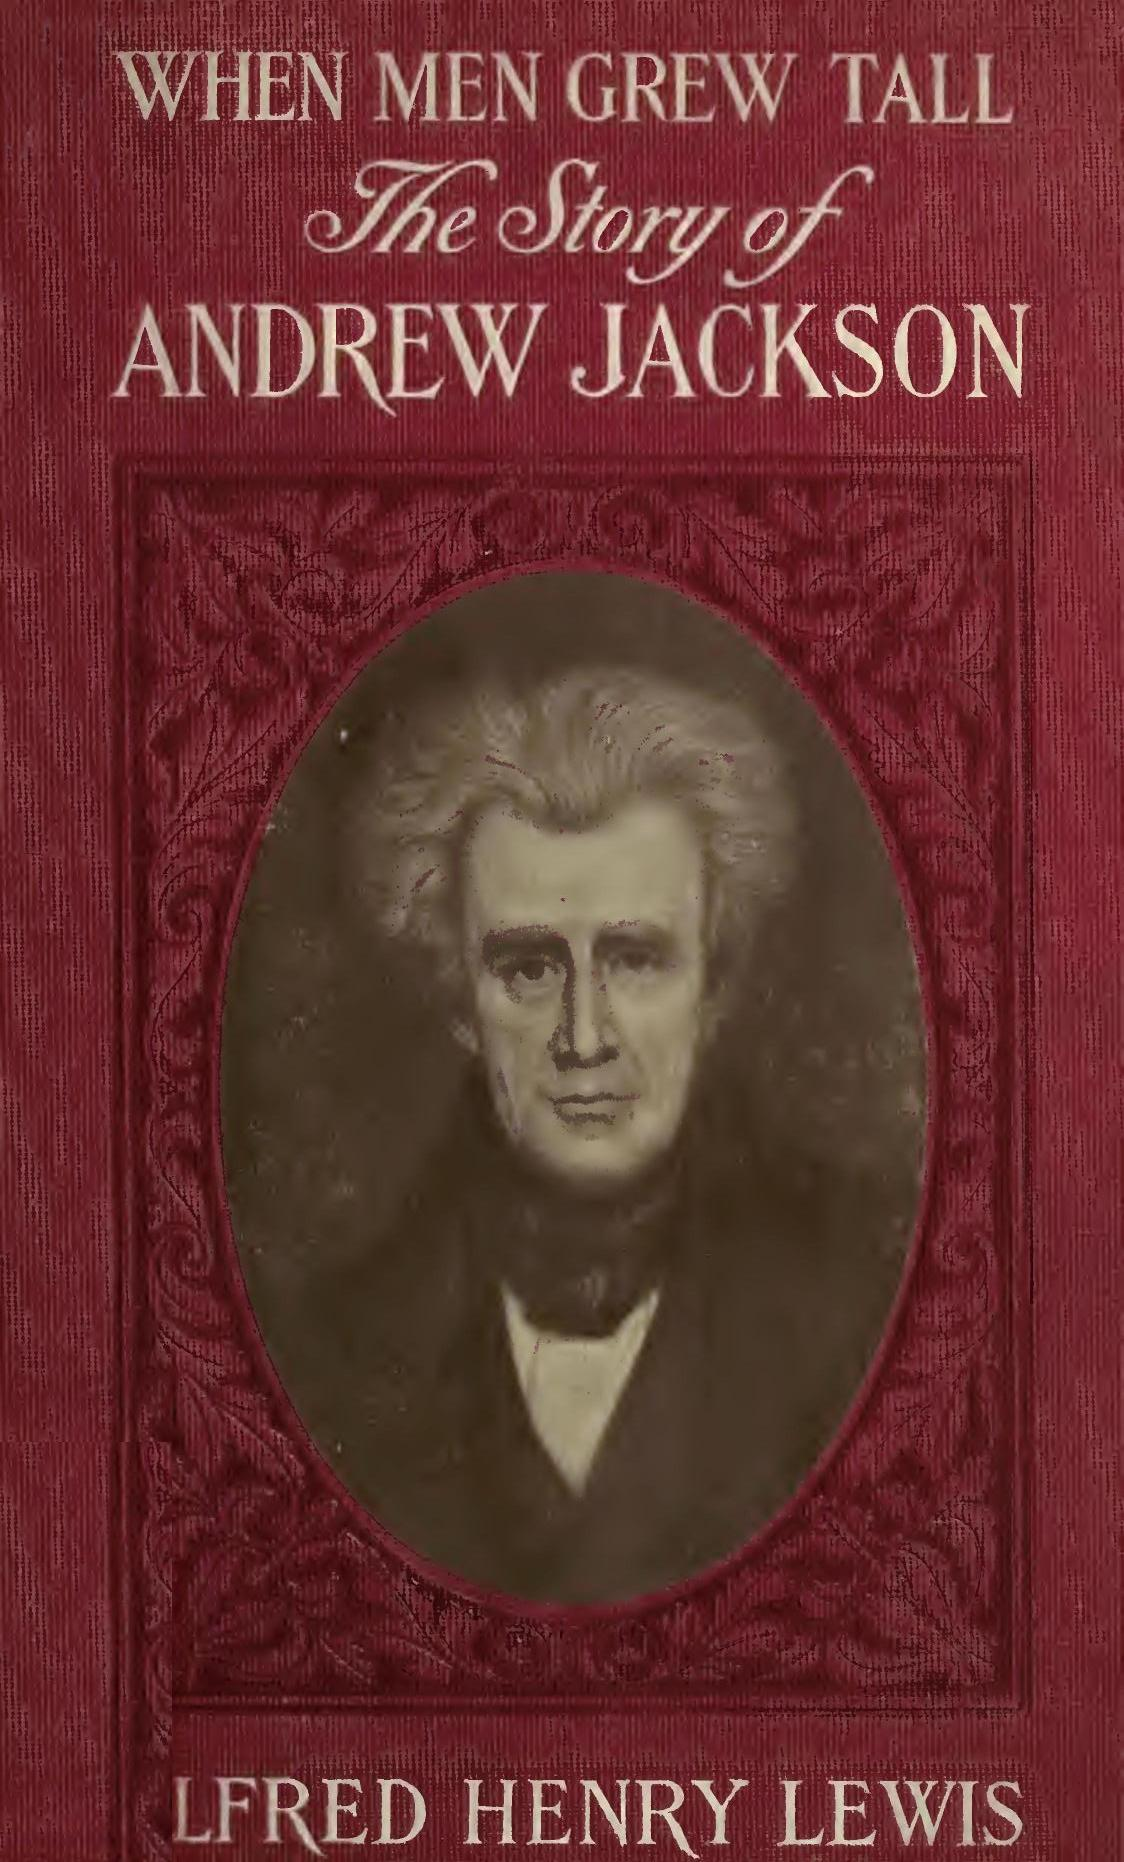 When Men Grew Tall Or the Story of Andrew Jackson, by Alfred Henry Lewis